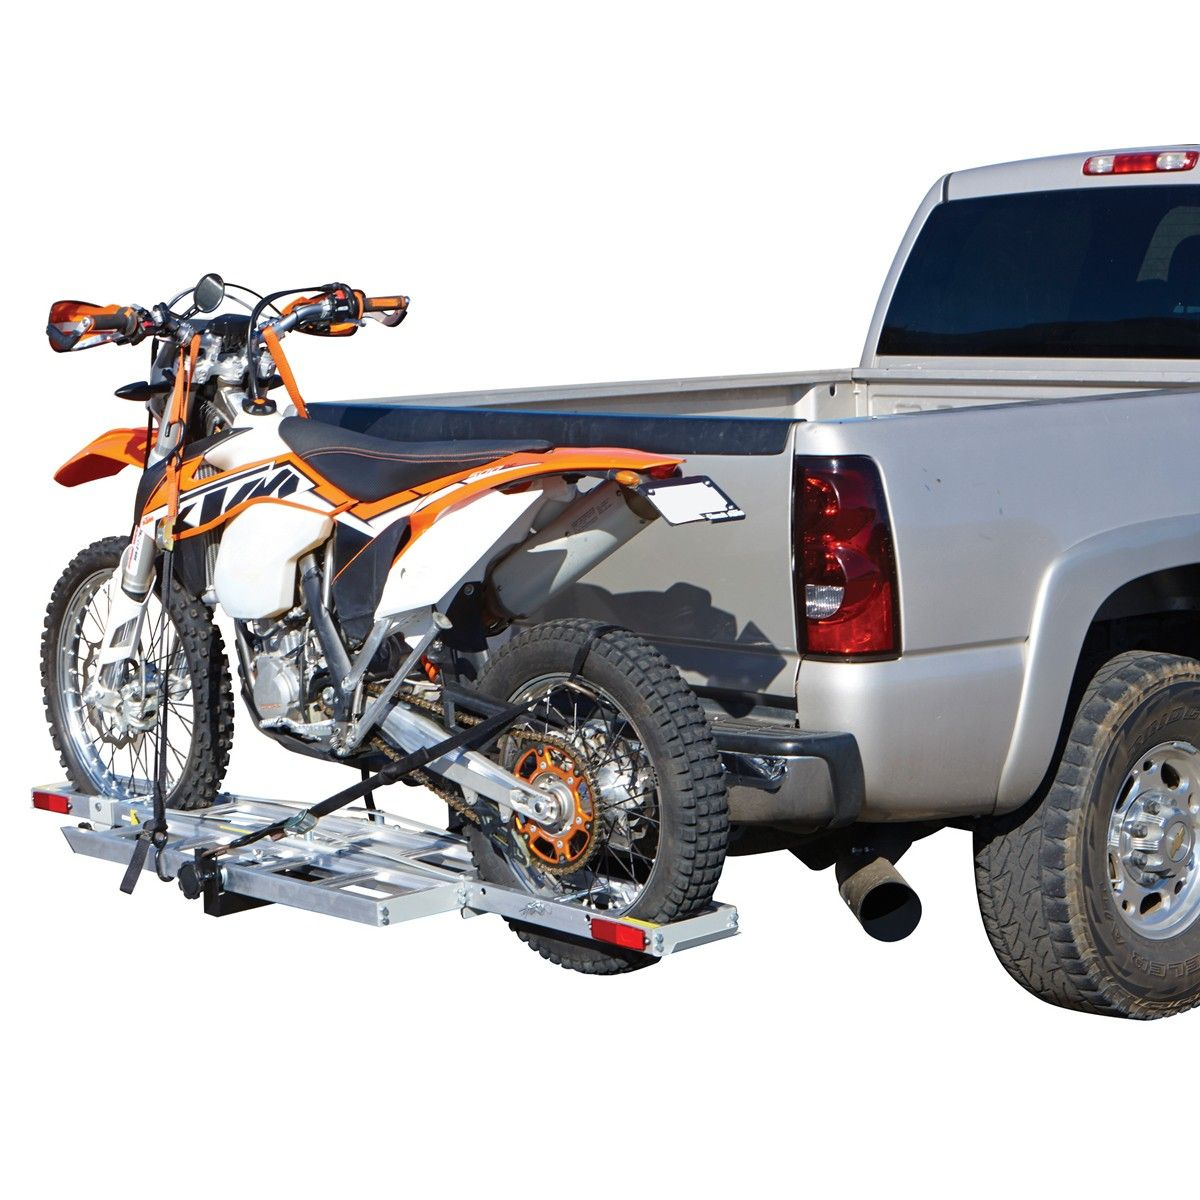 400 Lb Receiver Mount Motorcycle Carrier Motorcycle Carrier